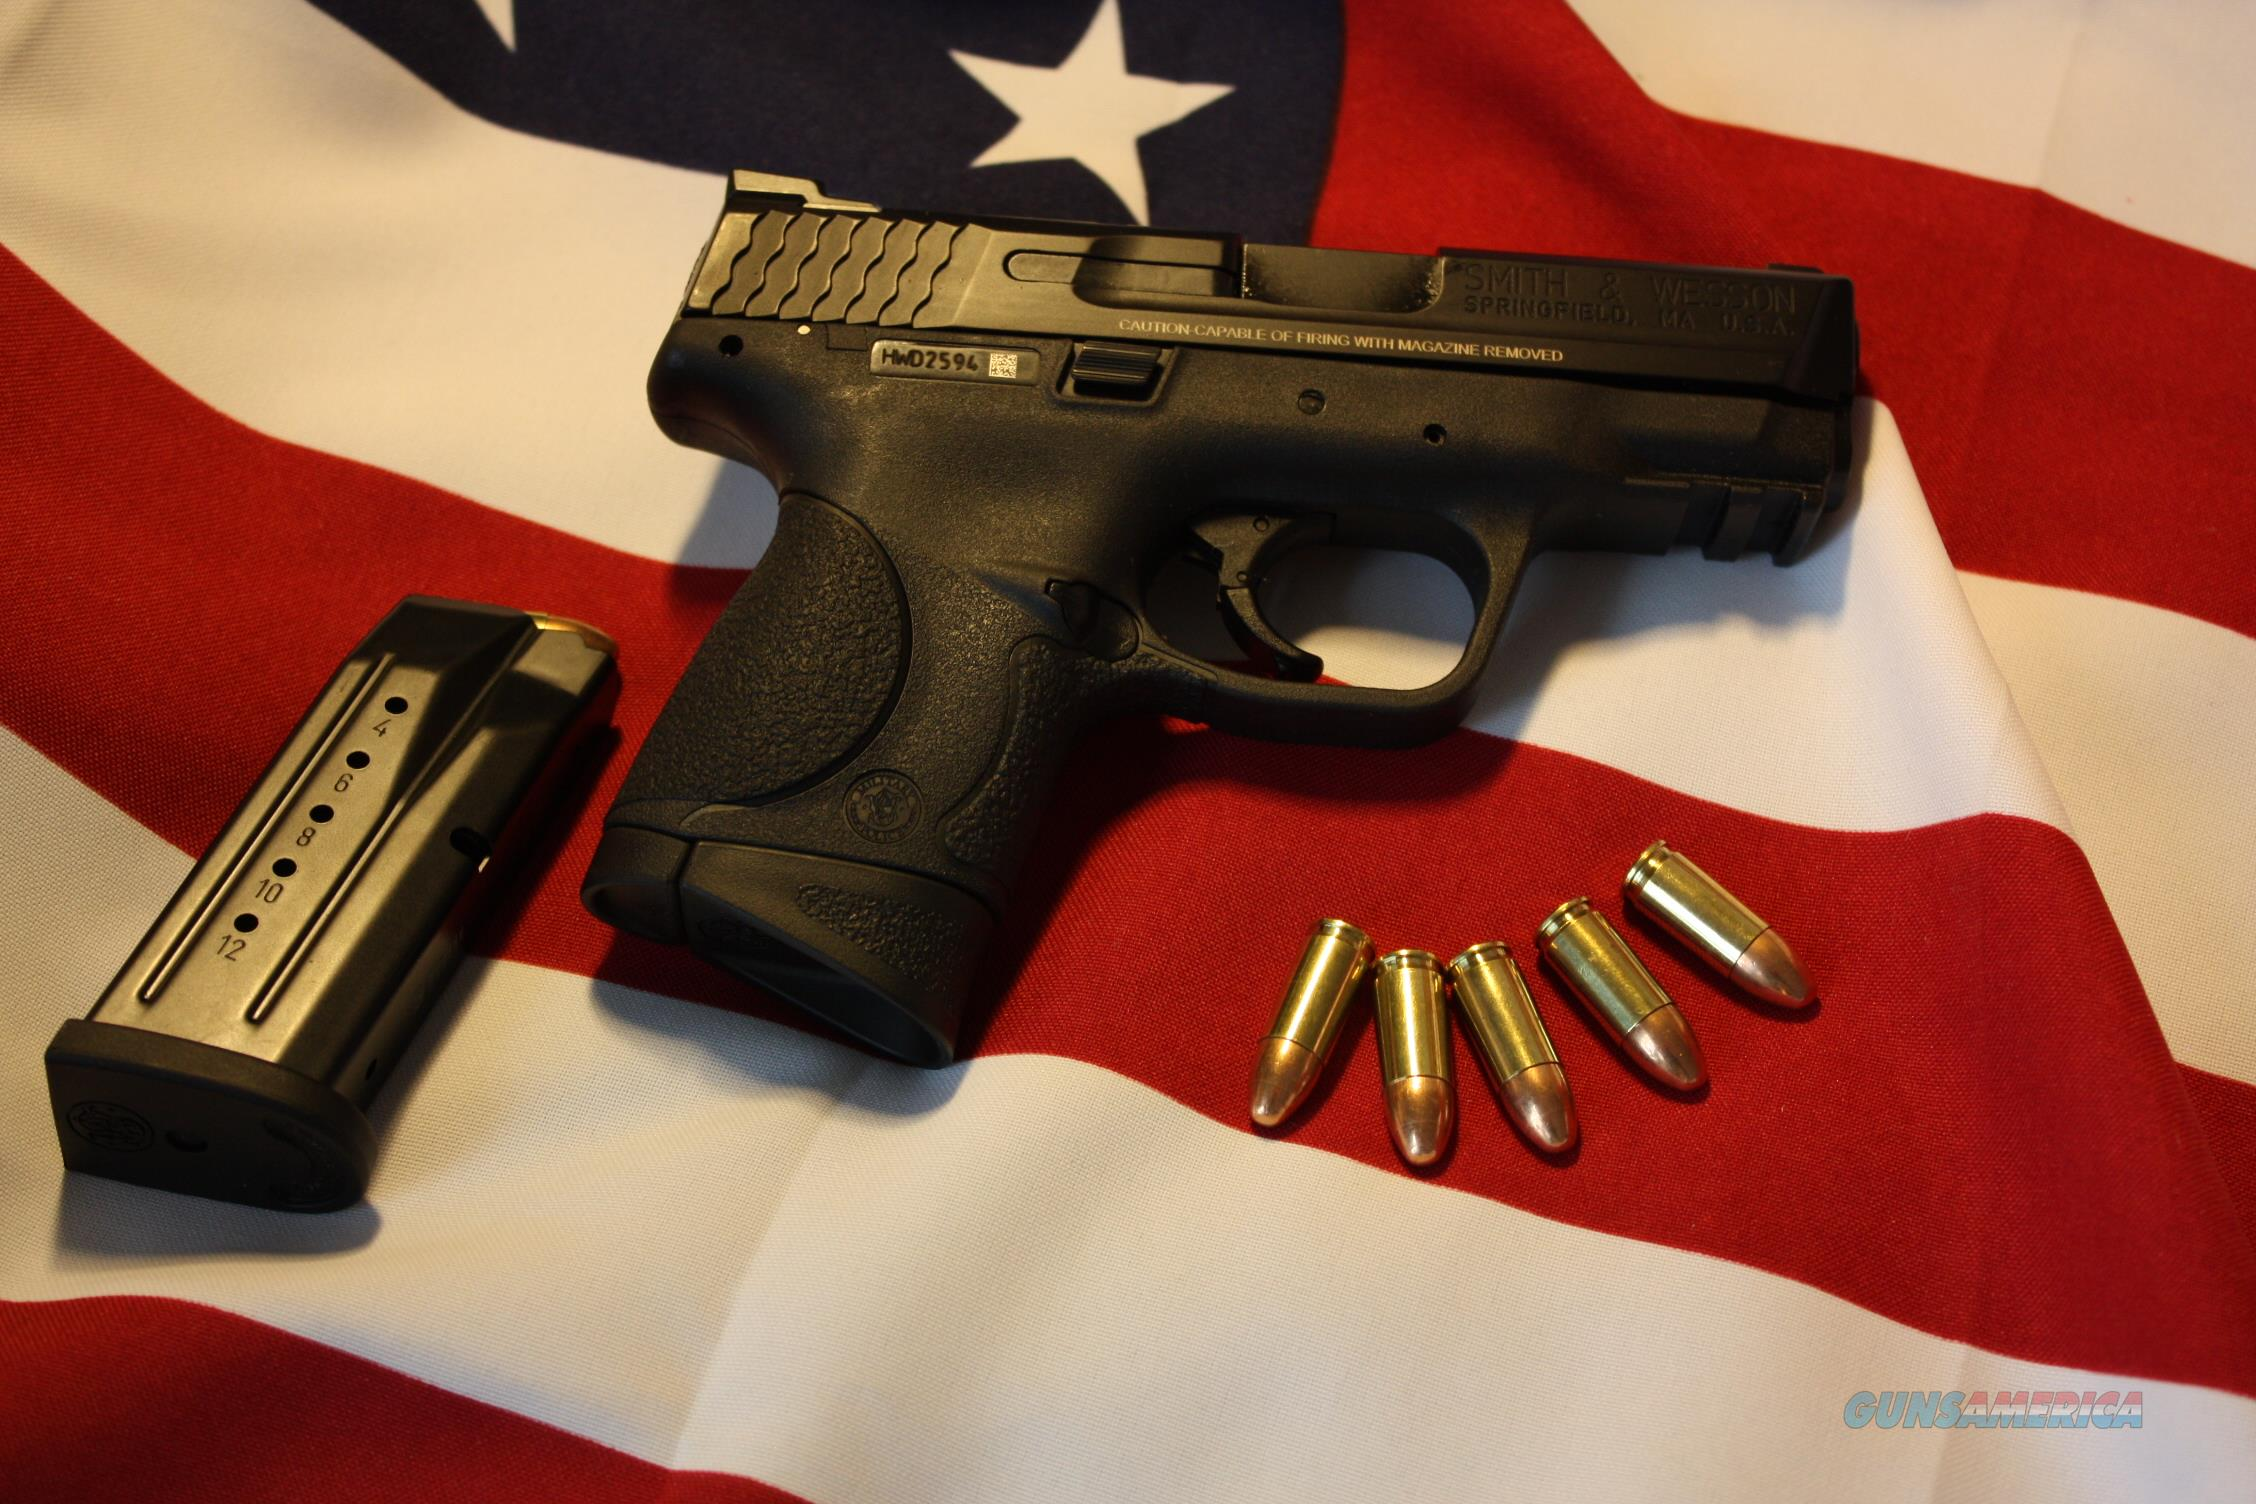 Smith and Wesson 209304 M&P 9MM 12RD w/2 mags and Factory Lifetime Warranty  Guns > Pistols > Smith & Wesson Pistols - Replica